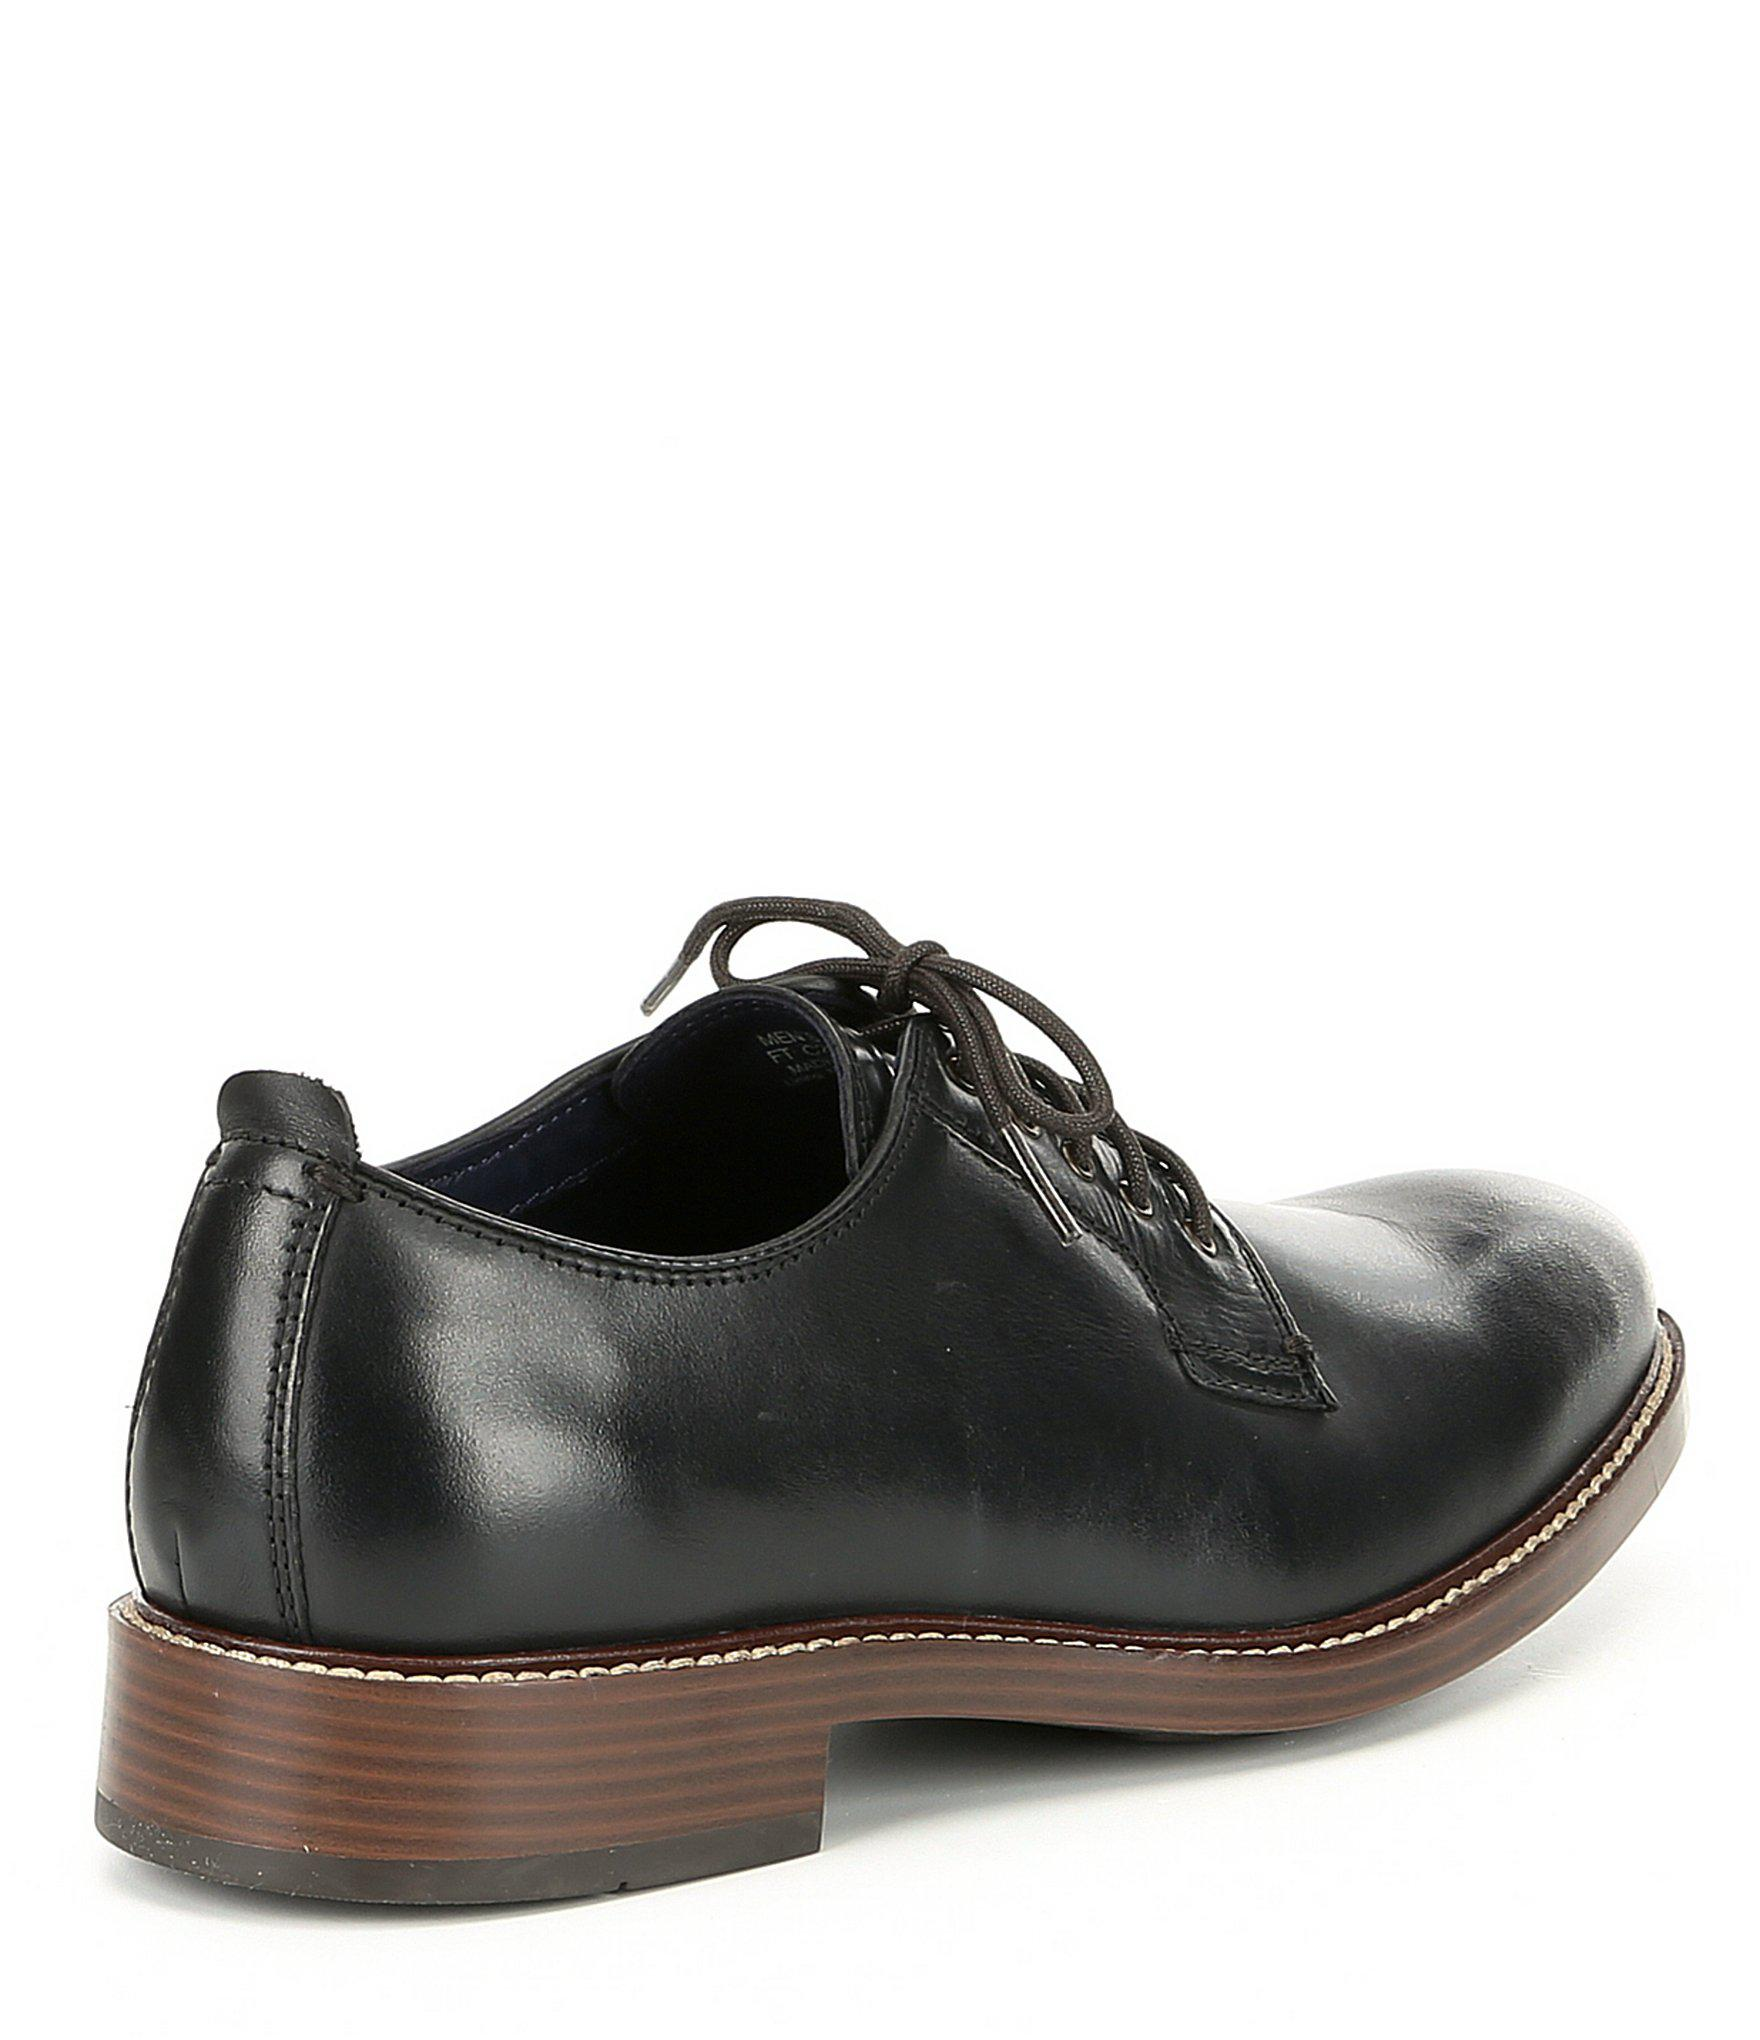 Cole Haan Men/'s Kennedy Grand Postman Leather Lace-Up Oxfords Black